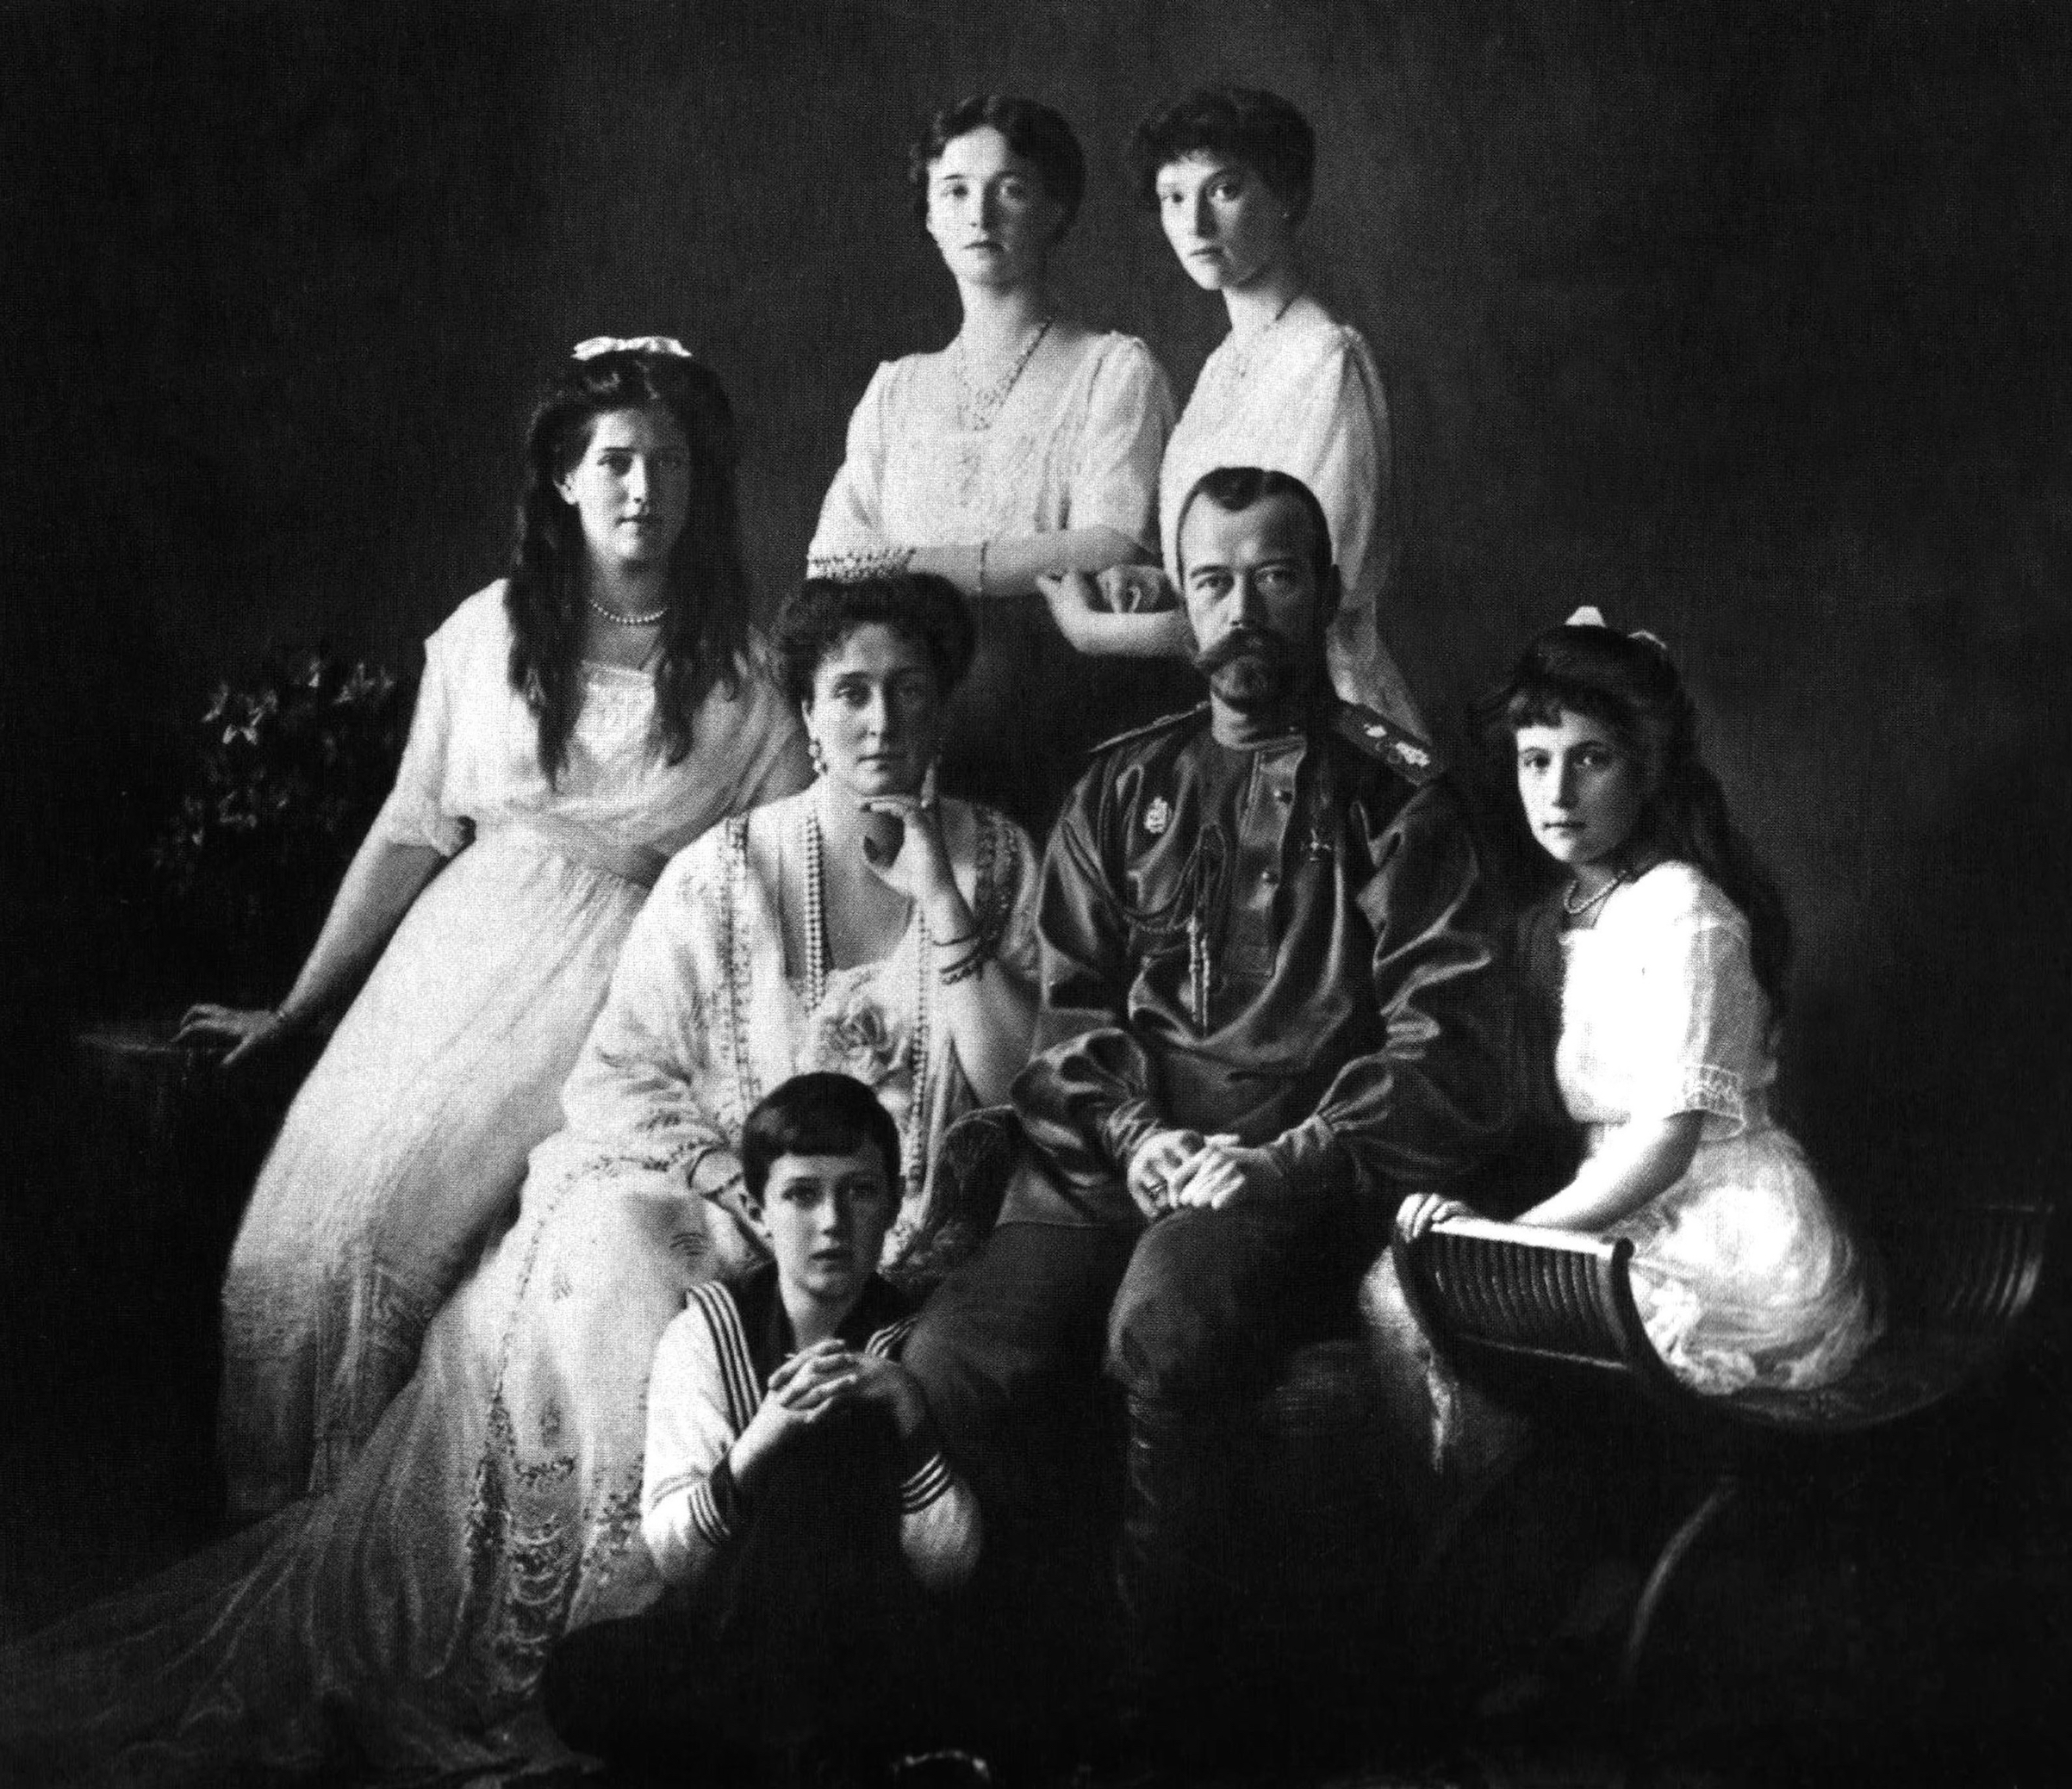 The Romanovs (ruling family of Russia) in 1913. Nicholas II (1868-1918), Tsar of Russia 1894-1917, with his wife and children.